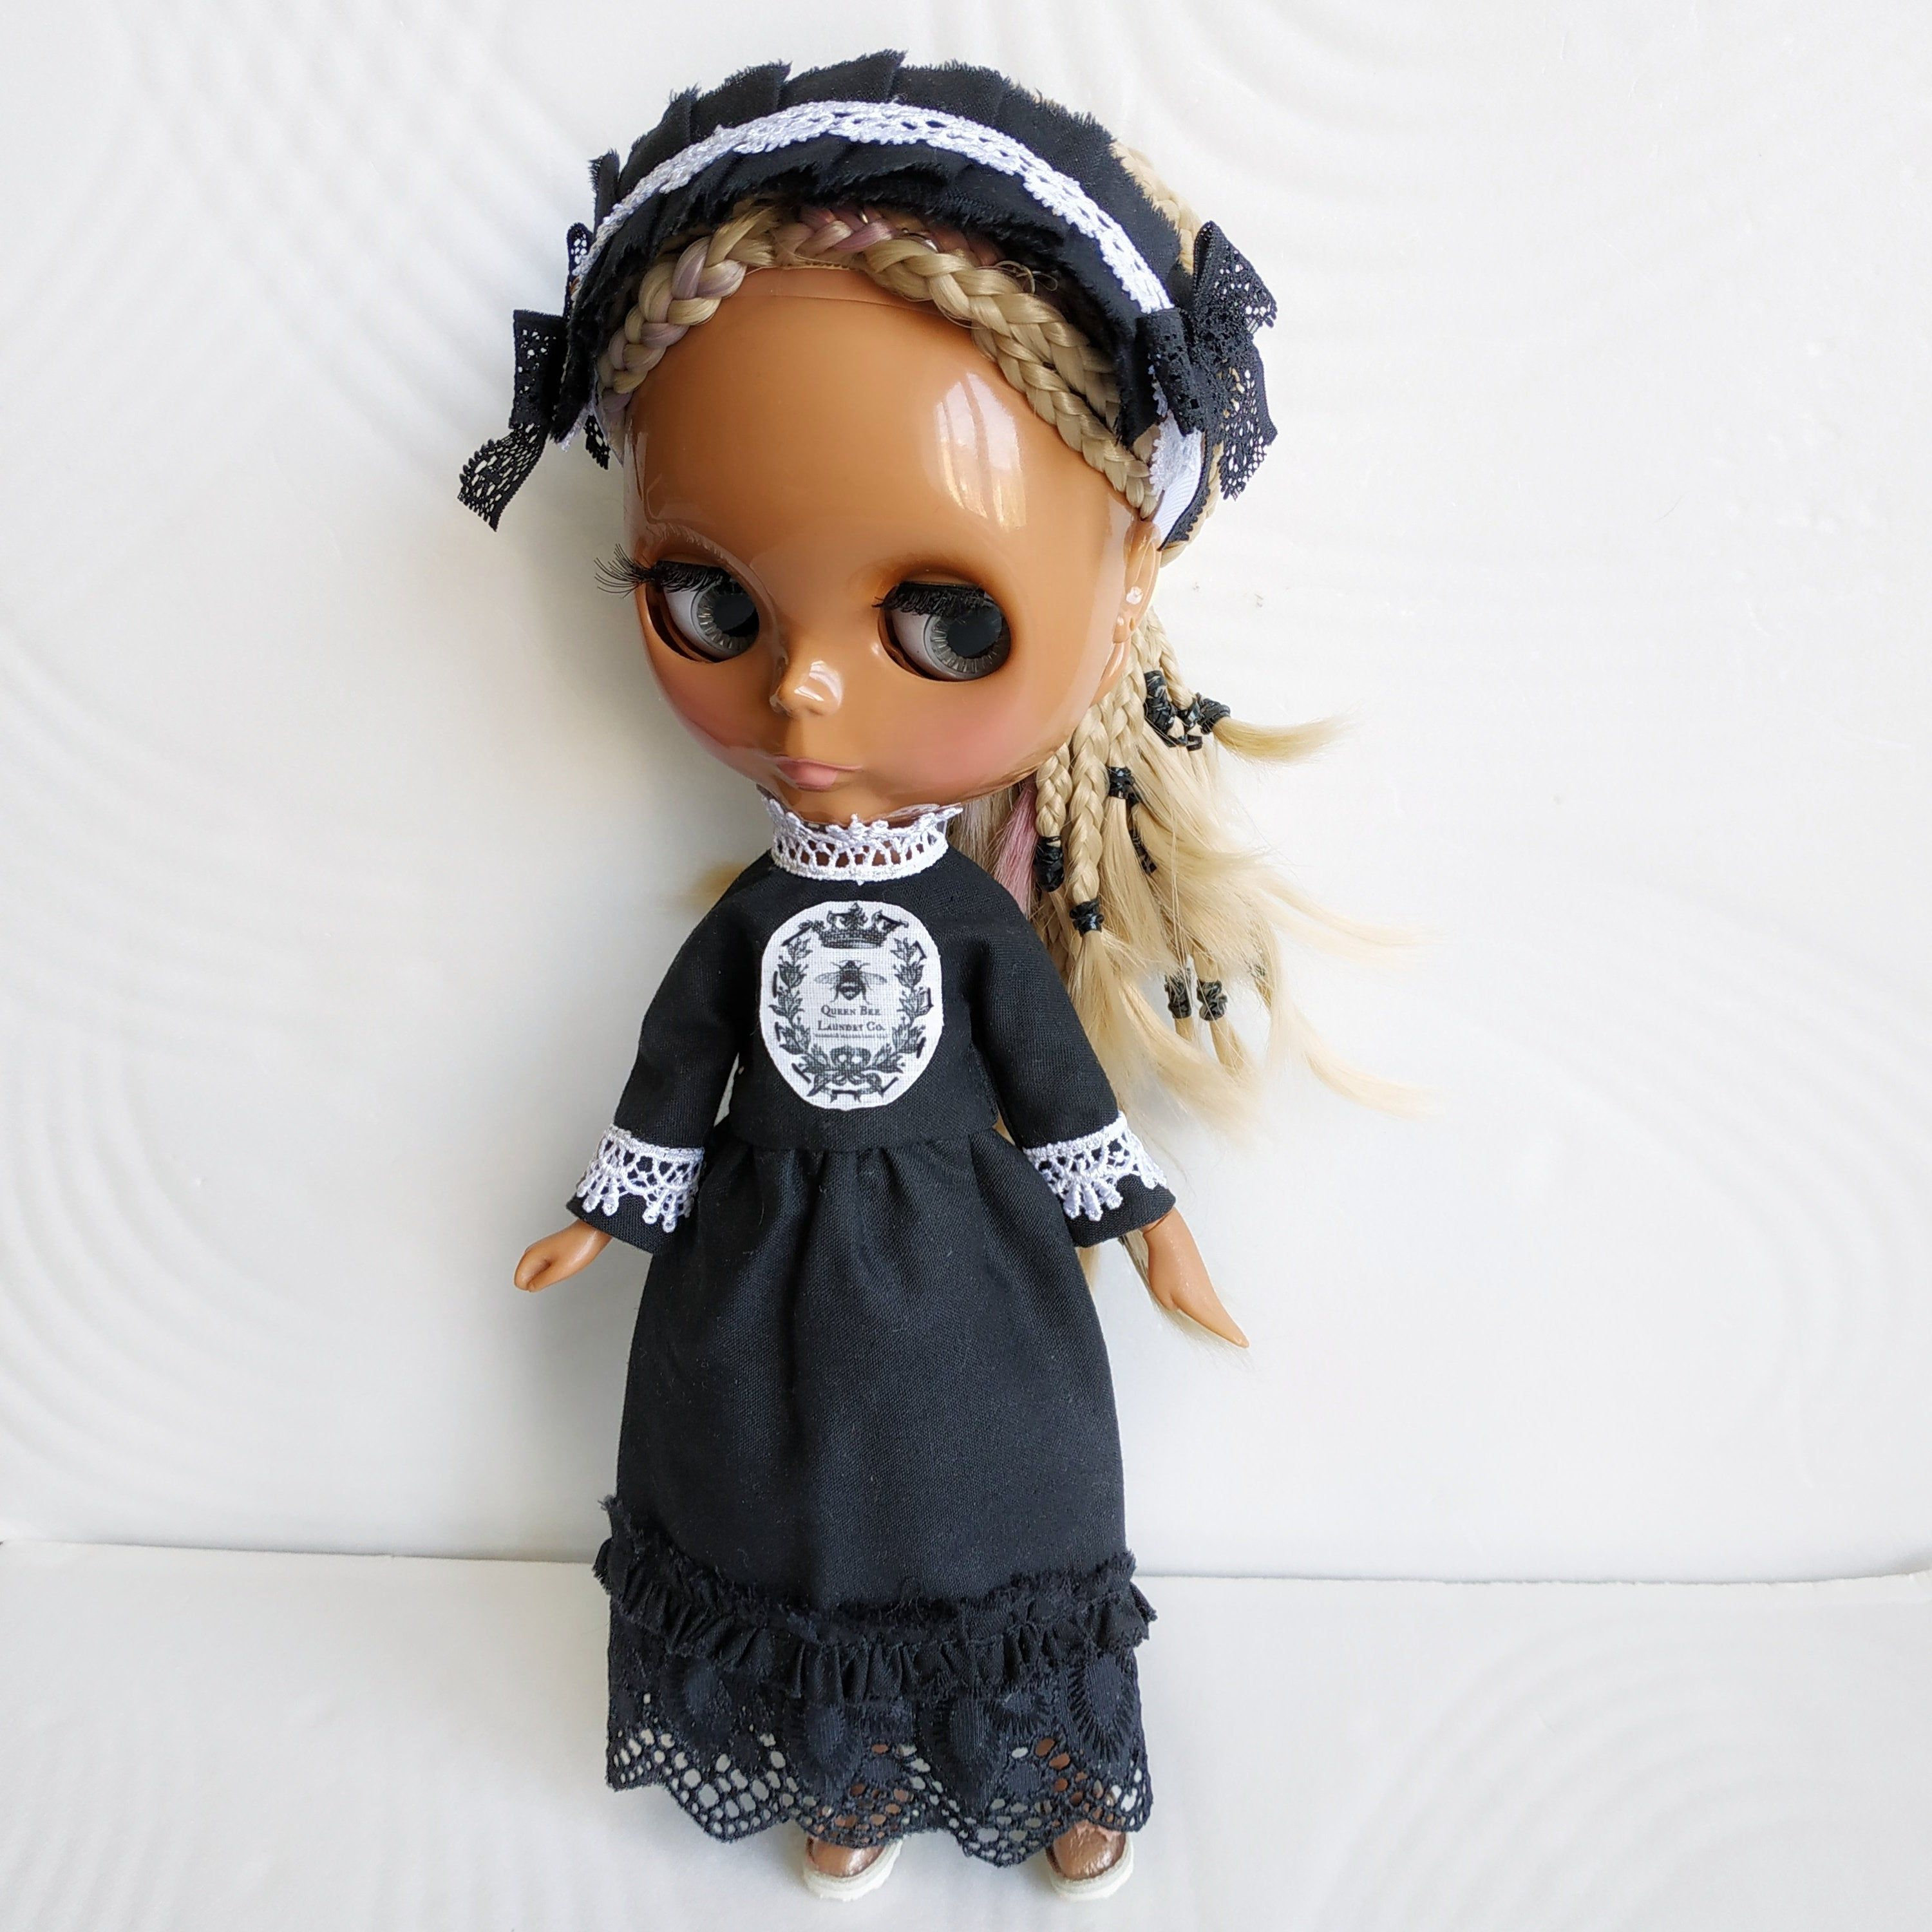 Blythe black long victorian dress and lace headband/ Azone doll gothicoutfit set